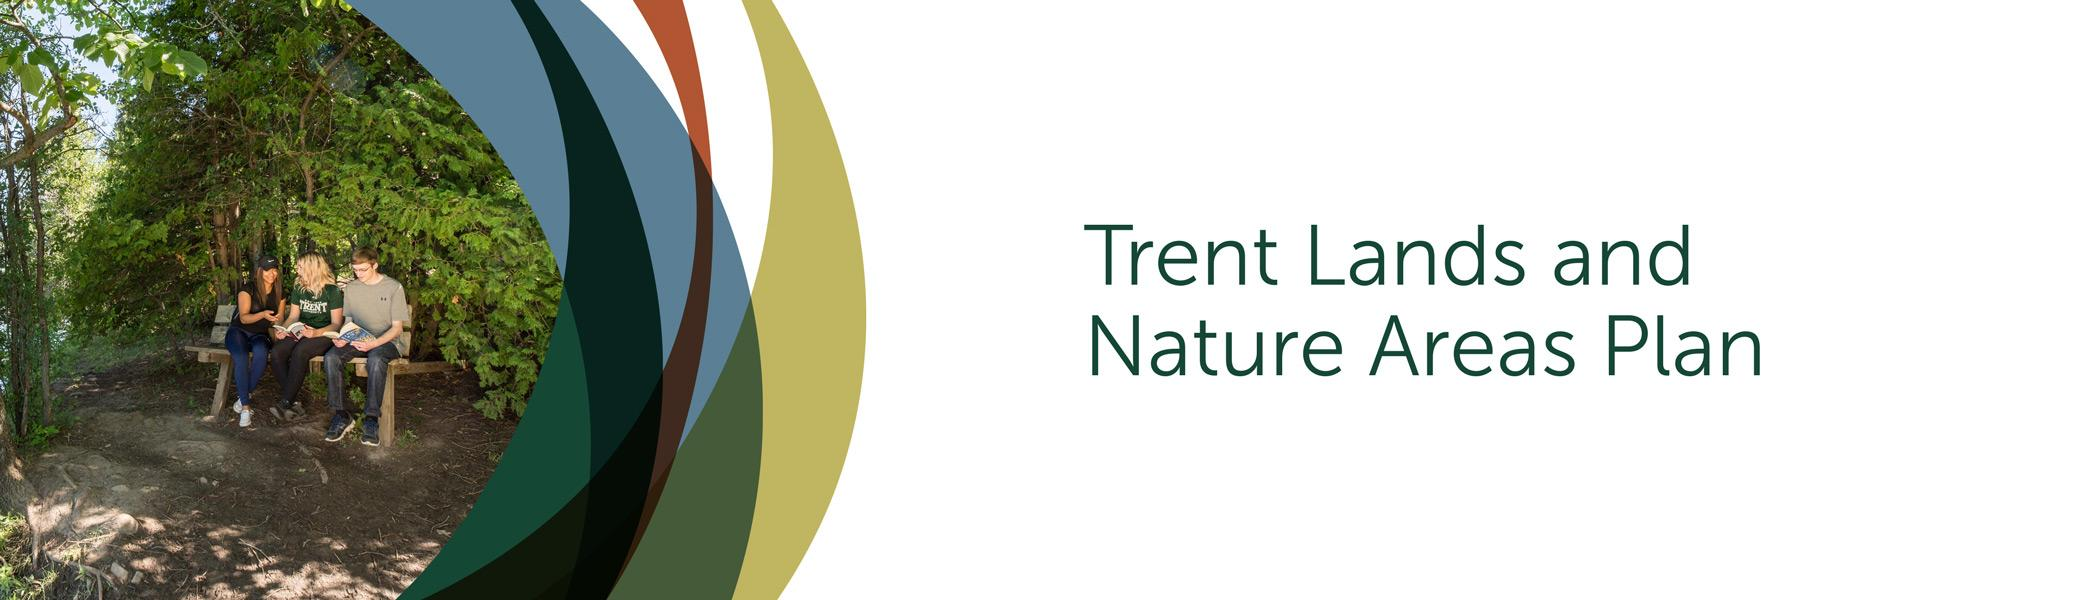 Consultation Brings Some Information on Phase Two of Trent Lands Plan